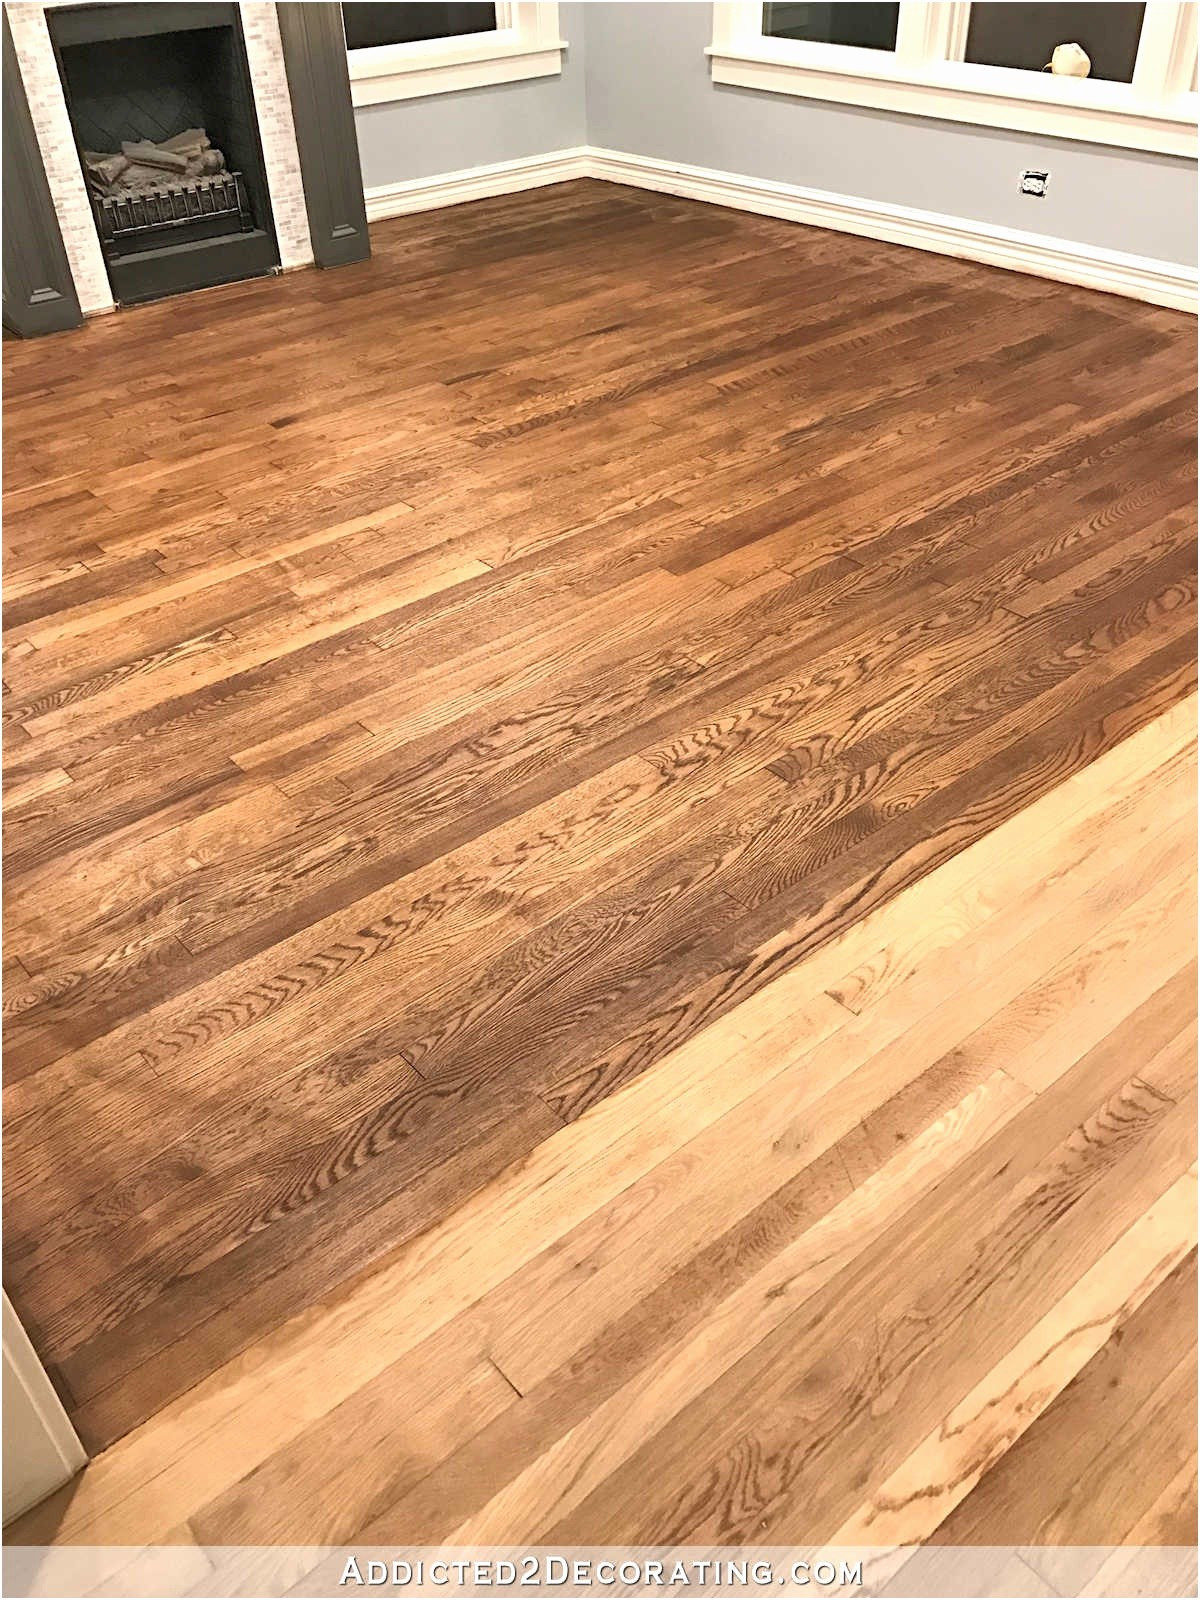 installing laminate hardwood floors yourself of 13 best of cost of hardwood floors gallery dizpos com in cost of hardwood floors awesome picture 48 of 50 armstrong hardwood flooring fresh hardwood image of